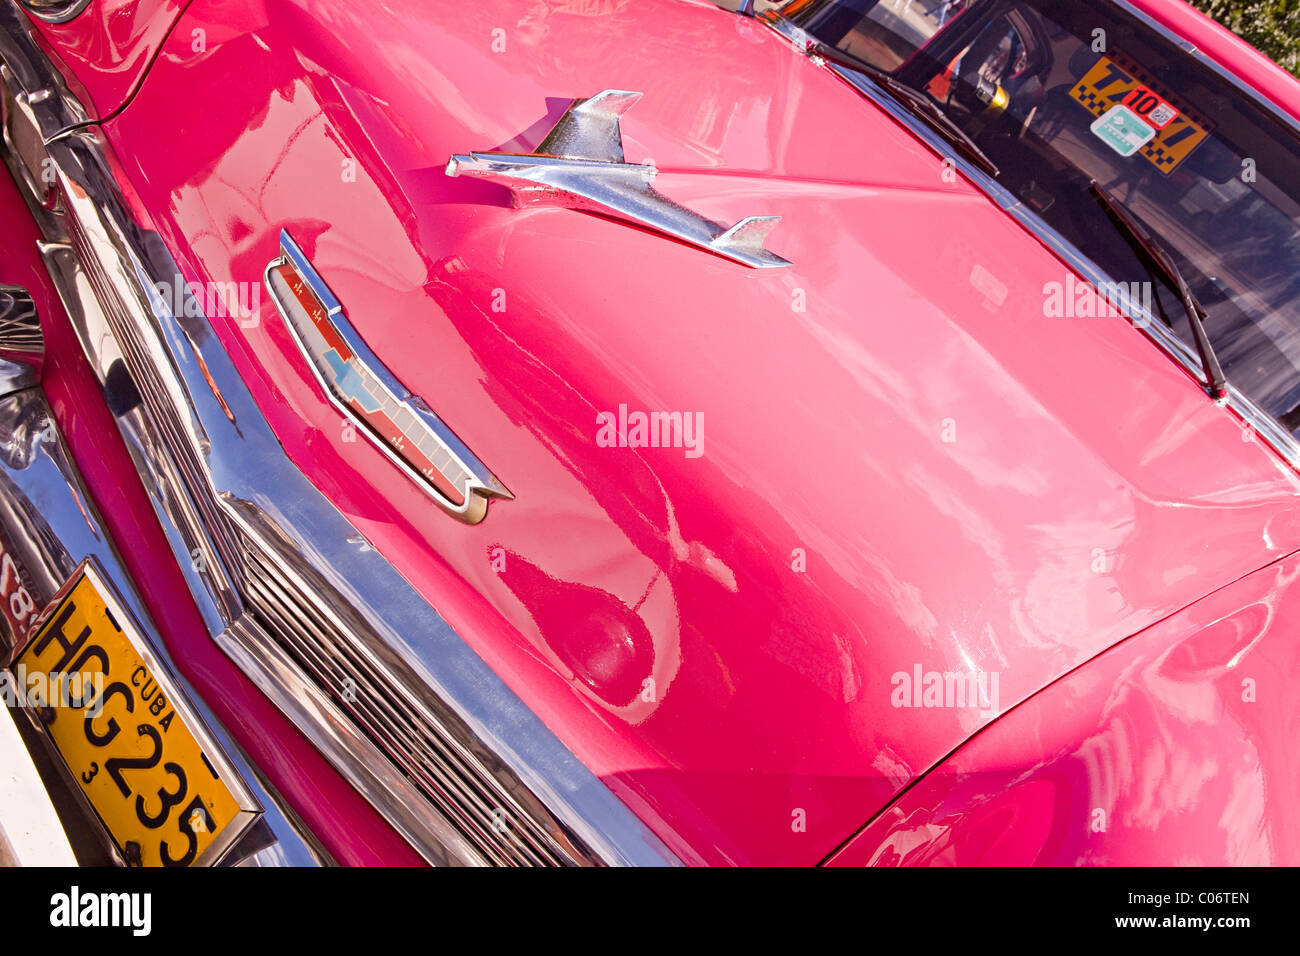 Newly restored bright pink Buick vintage American automobile used as a taxi in Havana Cuba Stock Photo